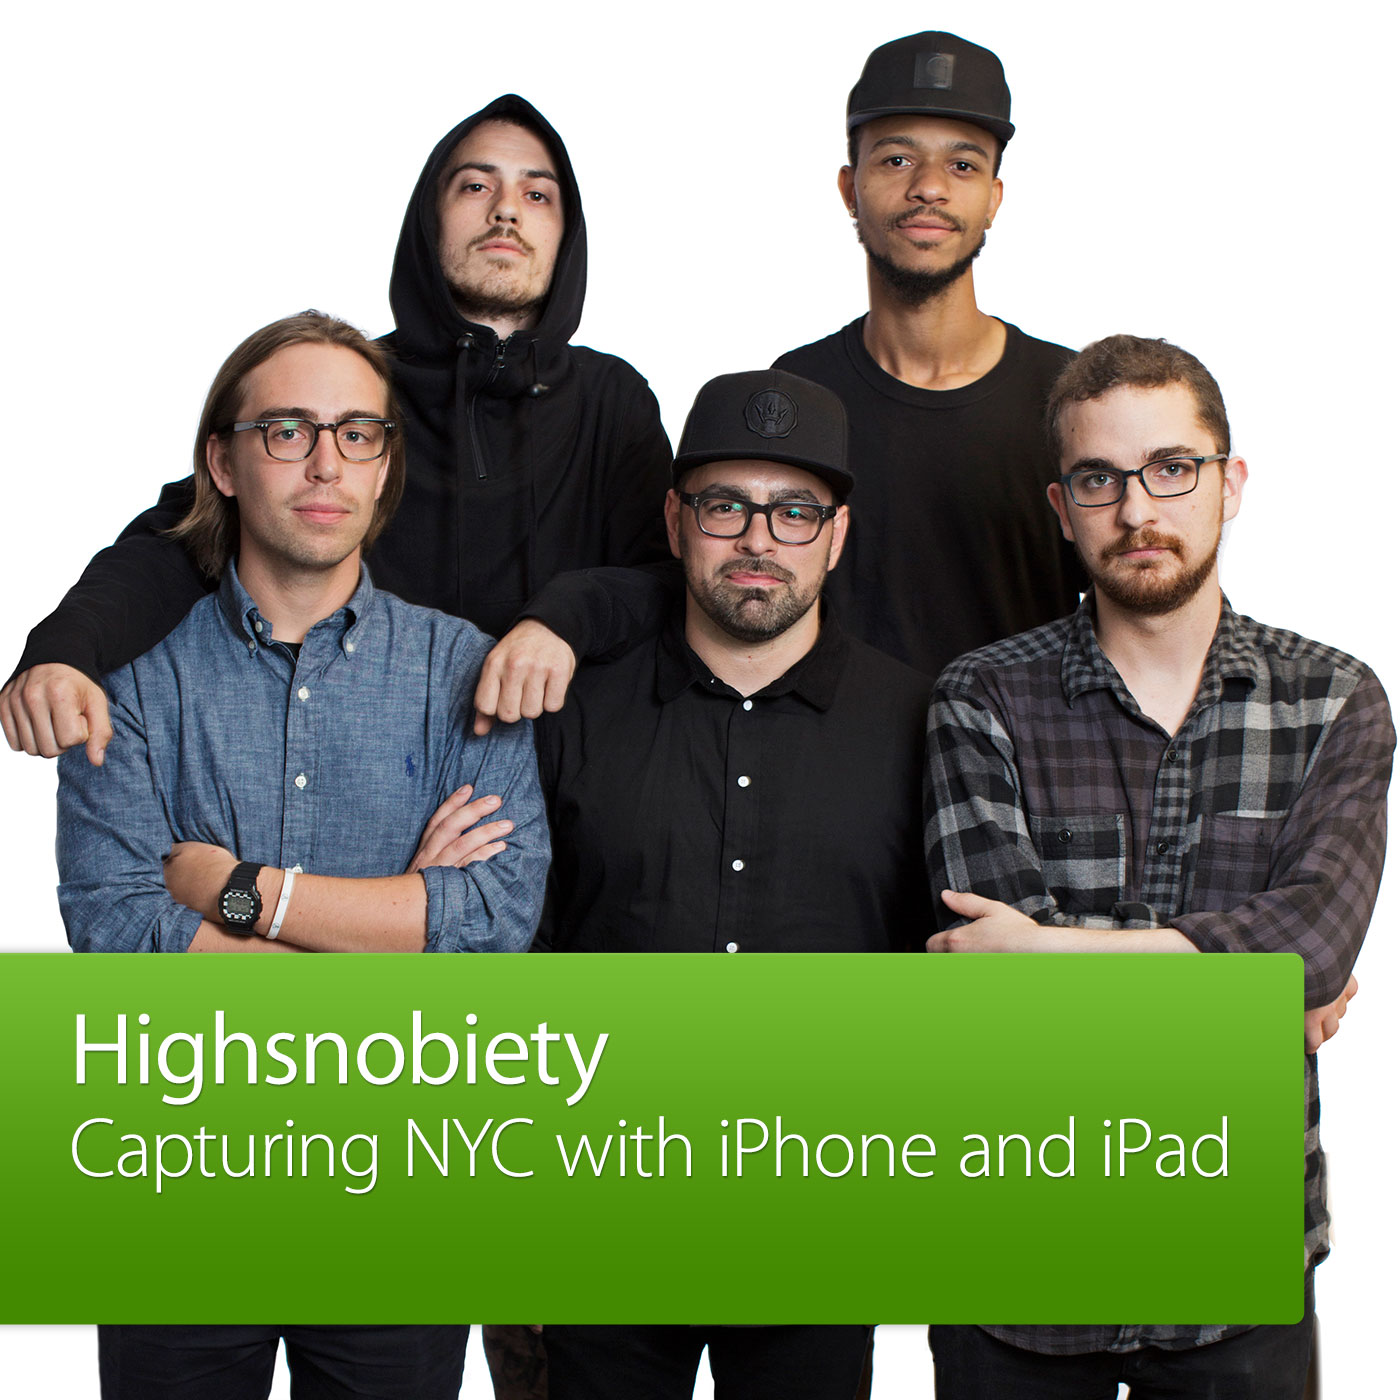 Highsnobiety: Capturing NYC with iPhone: Special Event